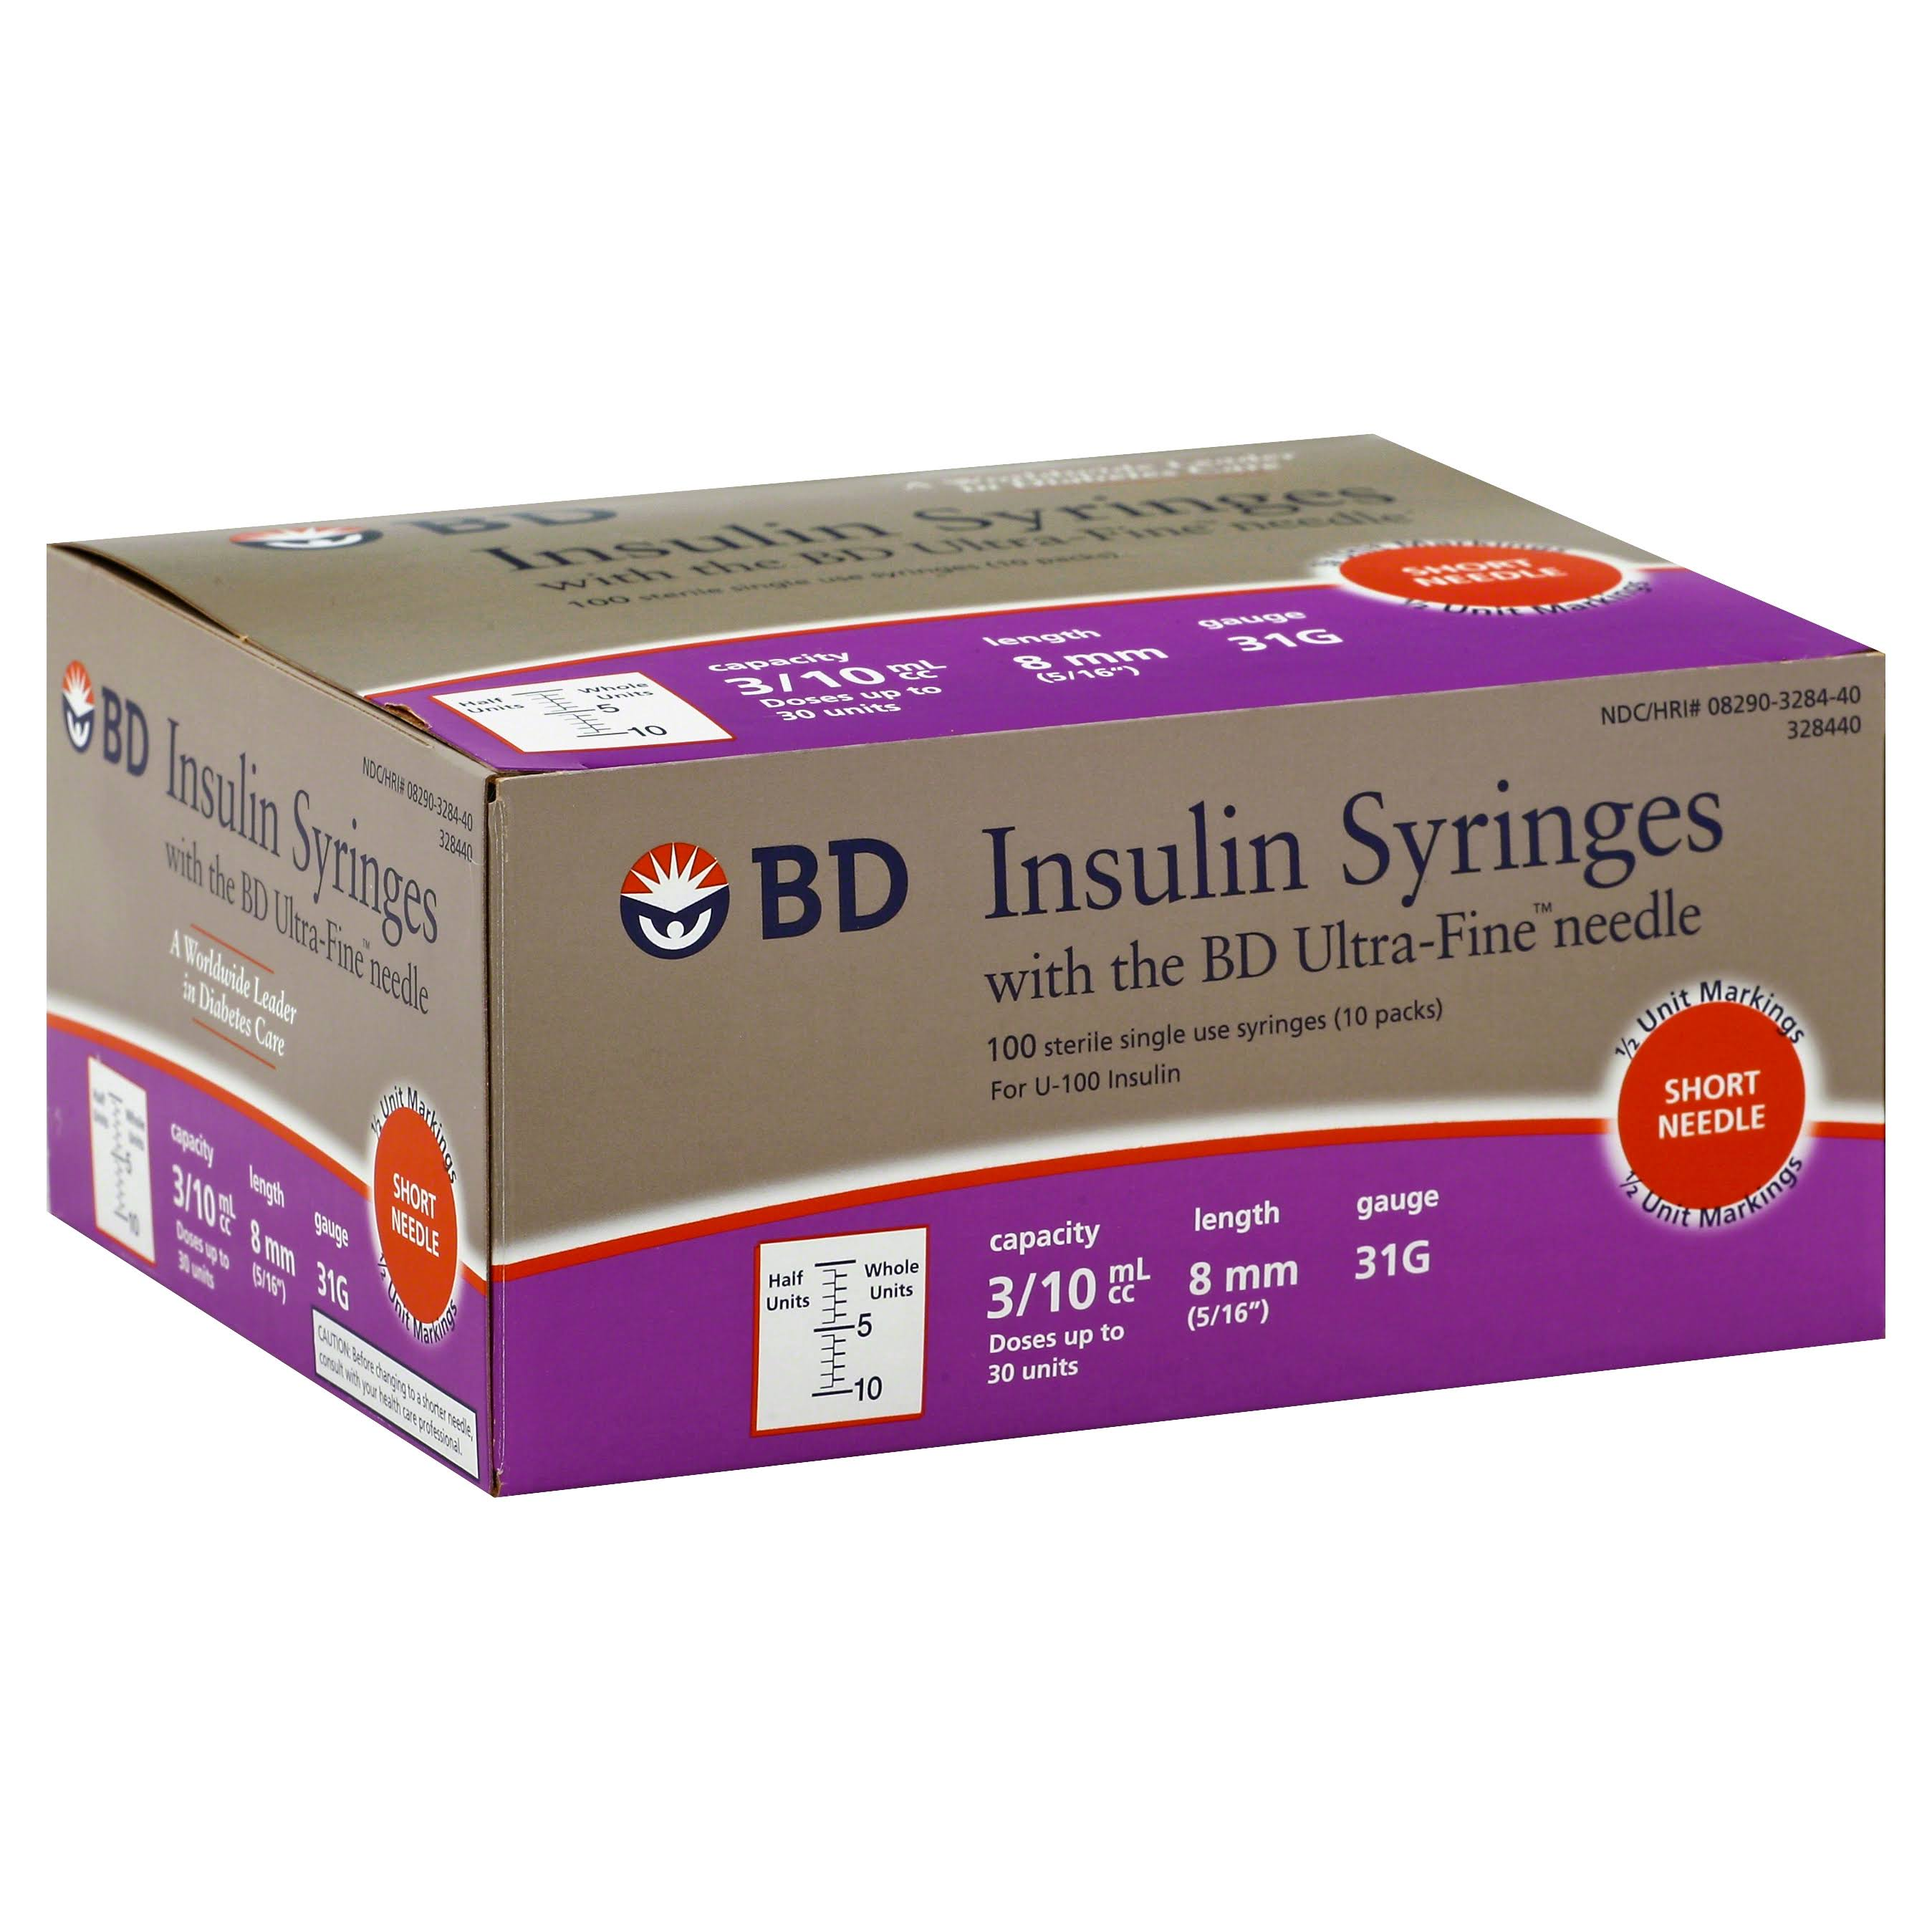 BD Ultra-Fine Insulin Syringes Short Needle - 31 Gauge, 100pk